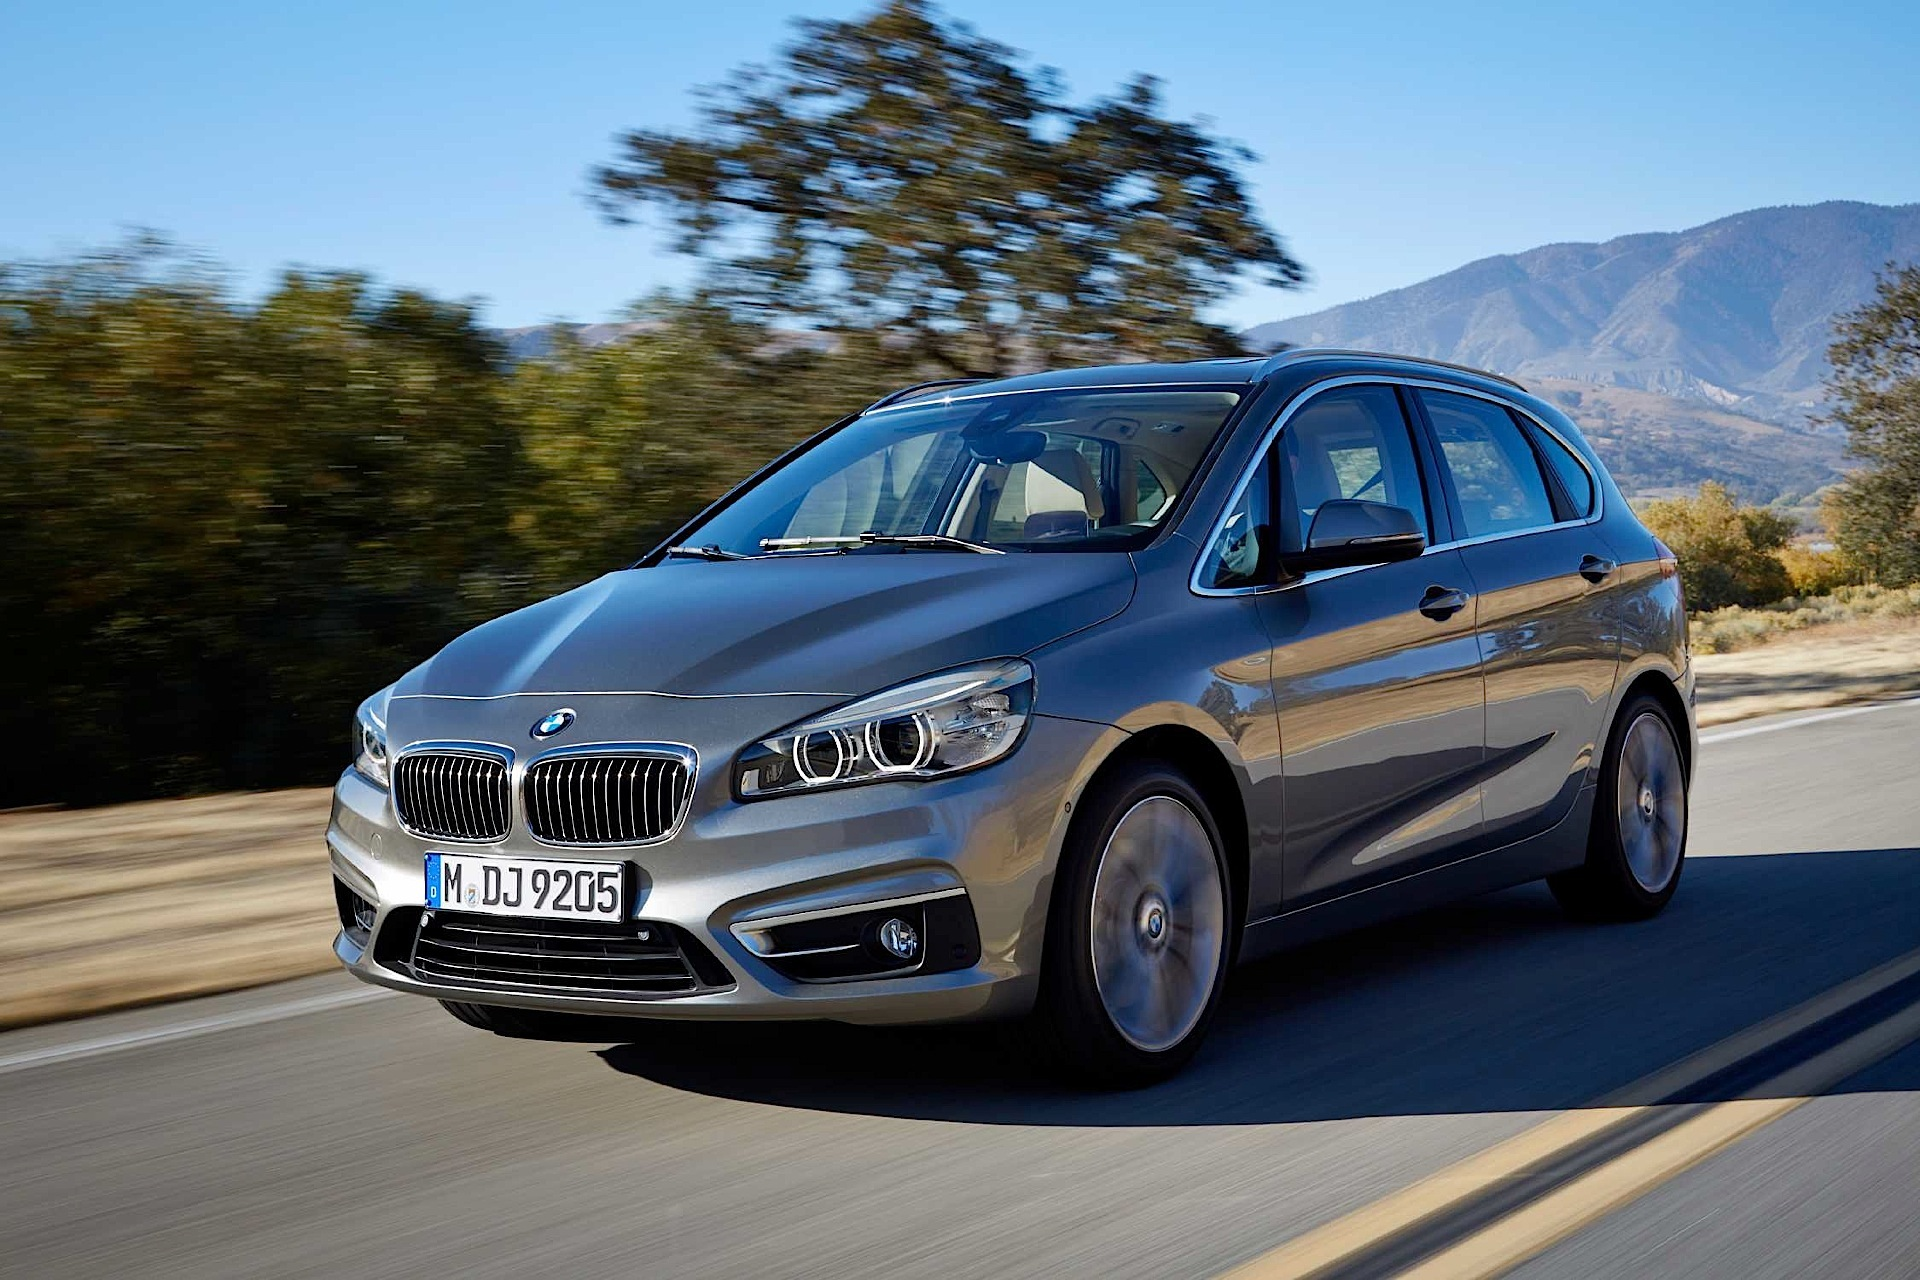 BMW 2 series Active Tourer 220i 2014 photo - 1